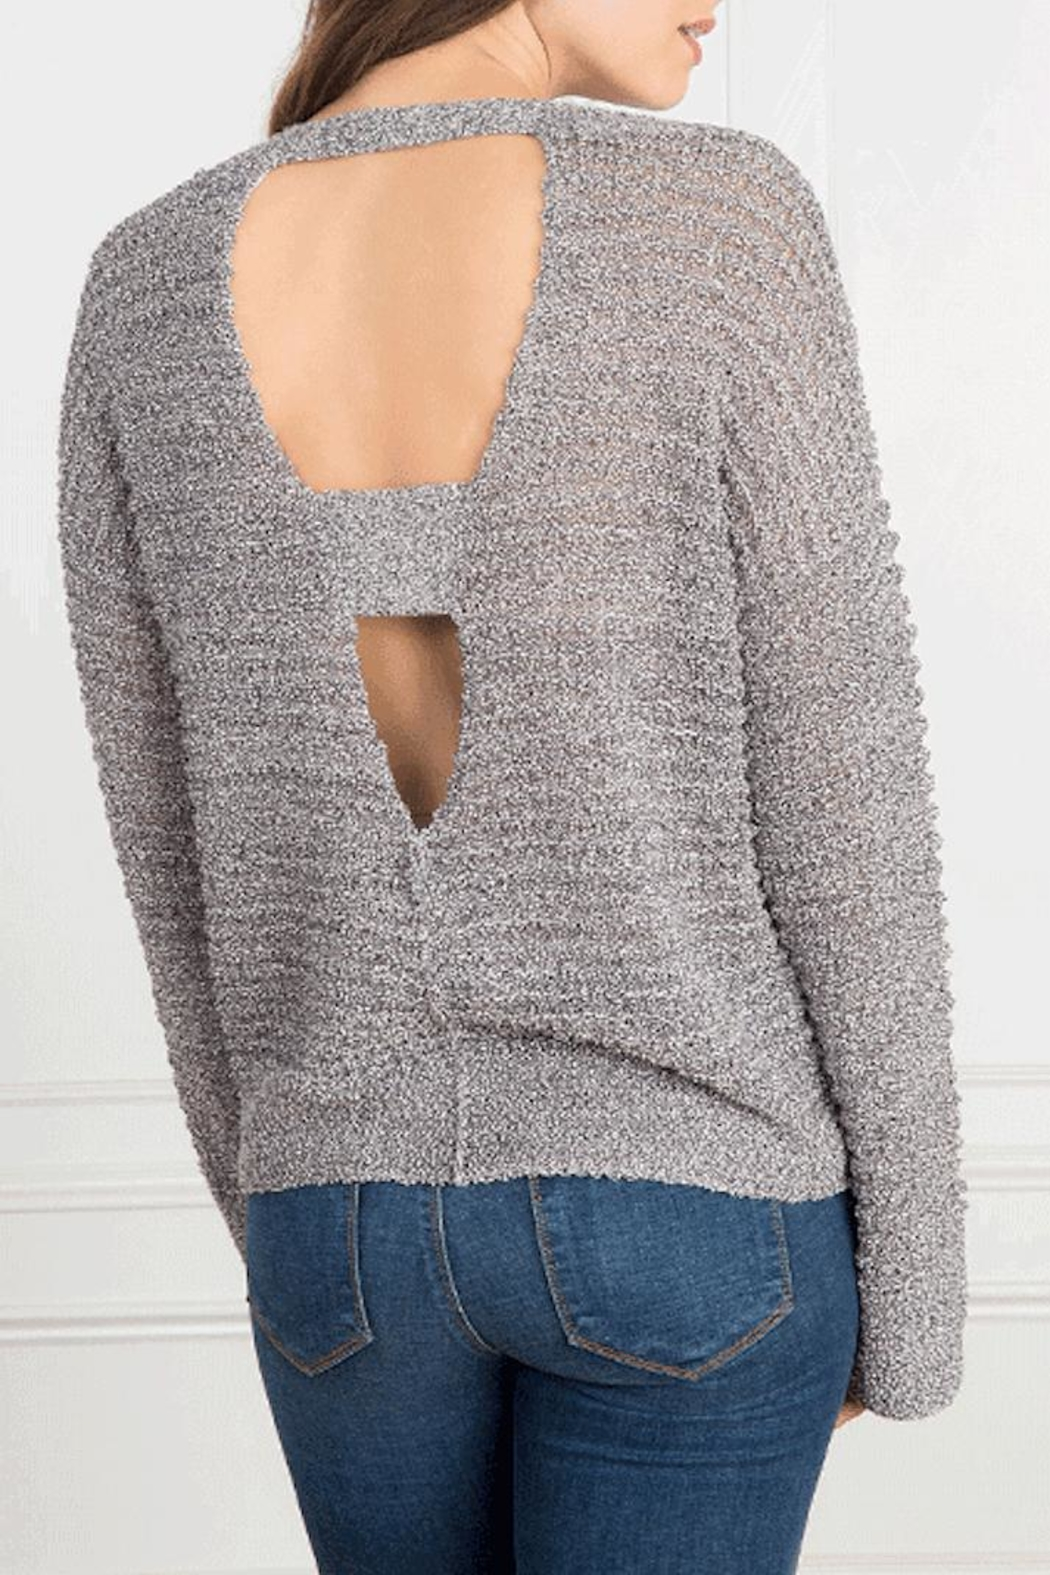 Feel the Piece by Terre Jacobs Hoover Sweater - Front Full Image